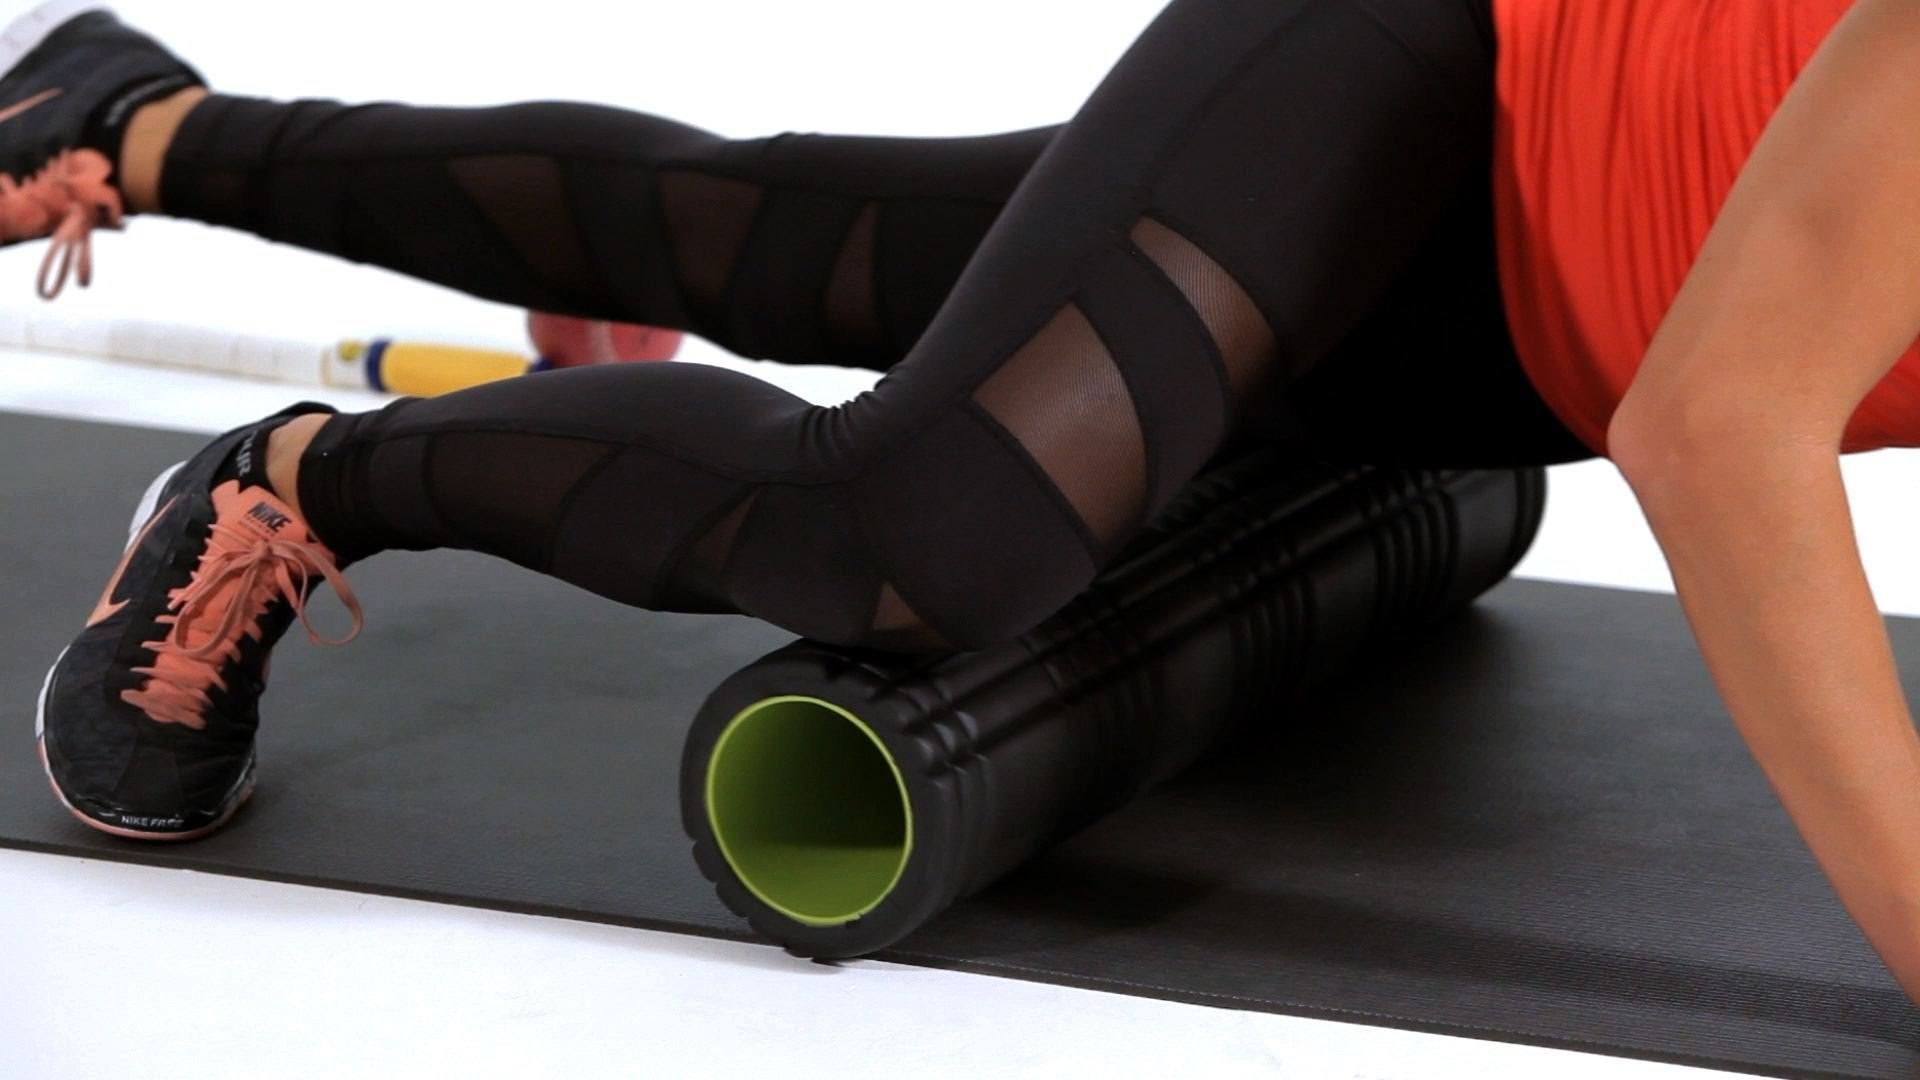 HOW TO USE A FOAM ROLLER FOR CALVES